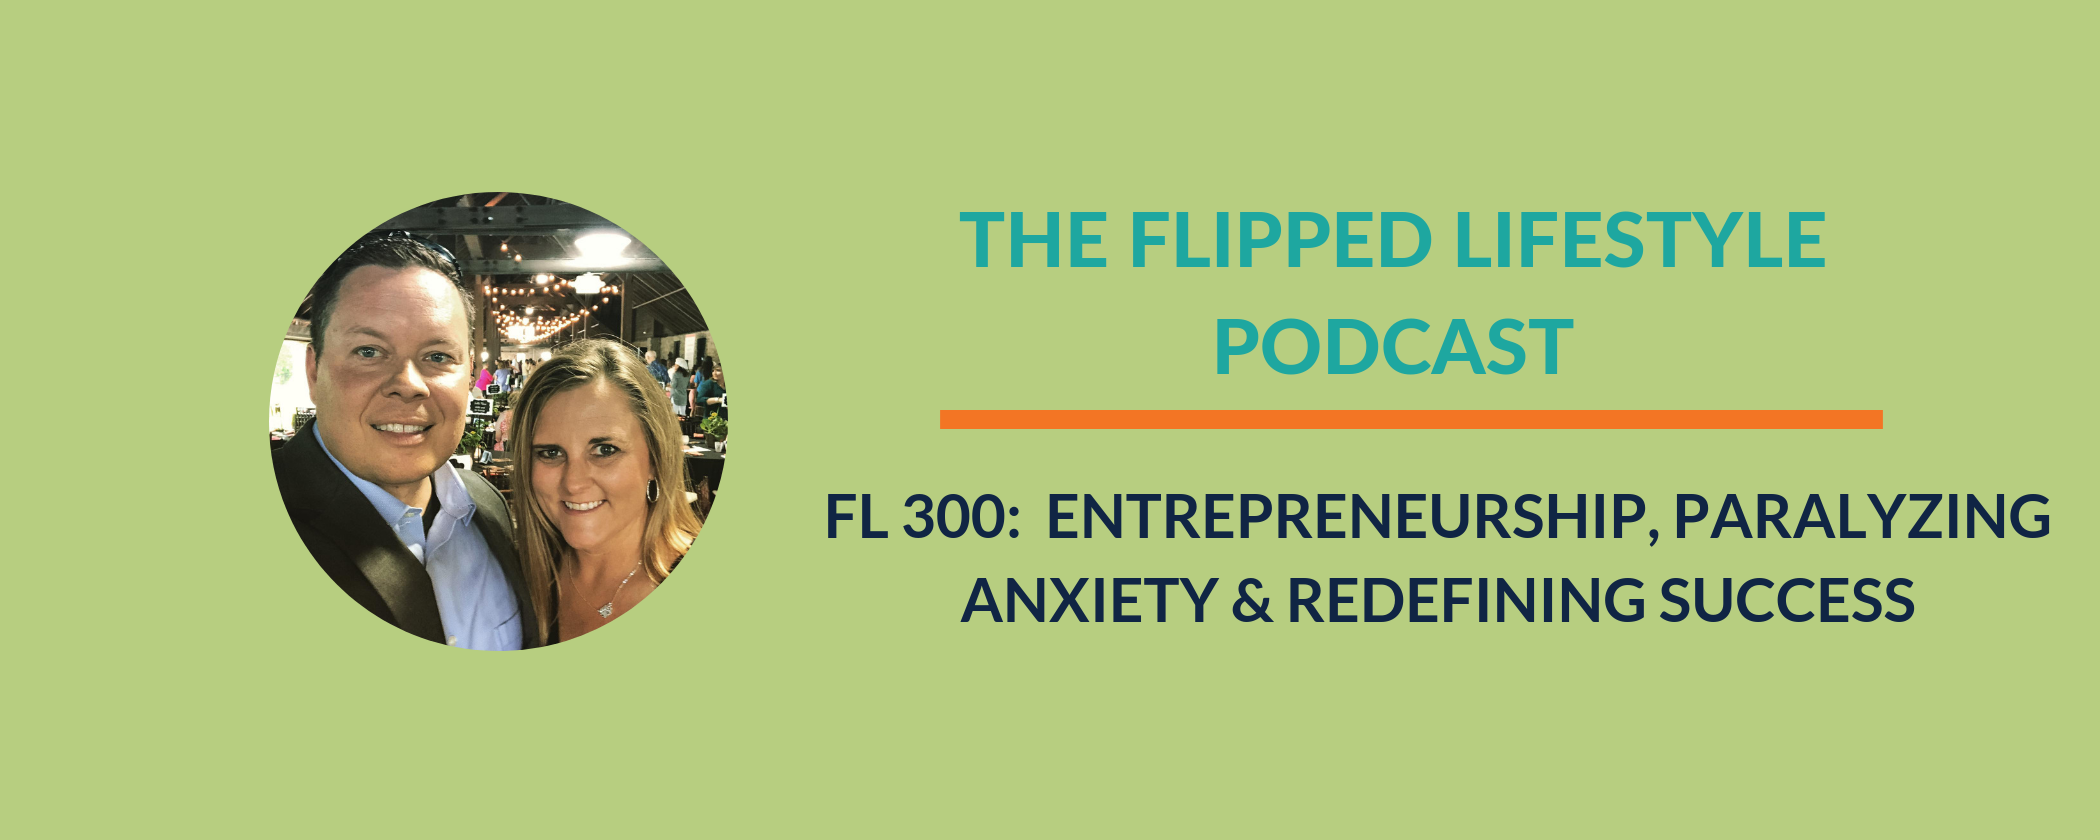 EARLY PODCAST: FL 300 - Entrepreneurship, Paralyzing Anxiety, and Redefining Success